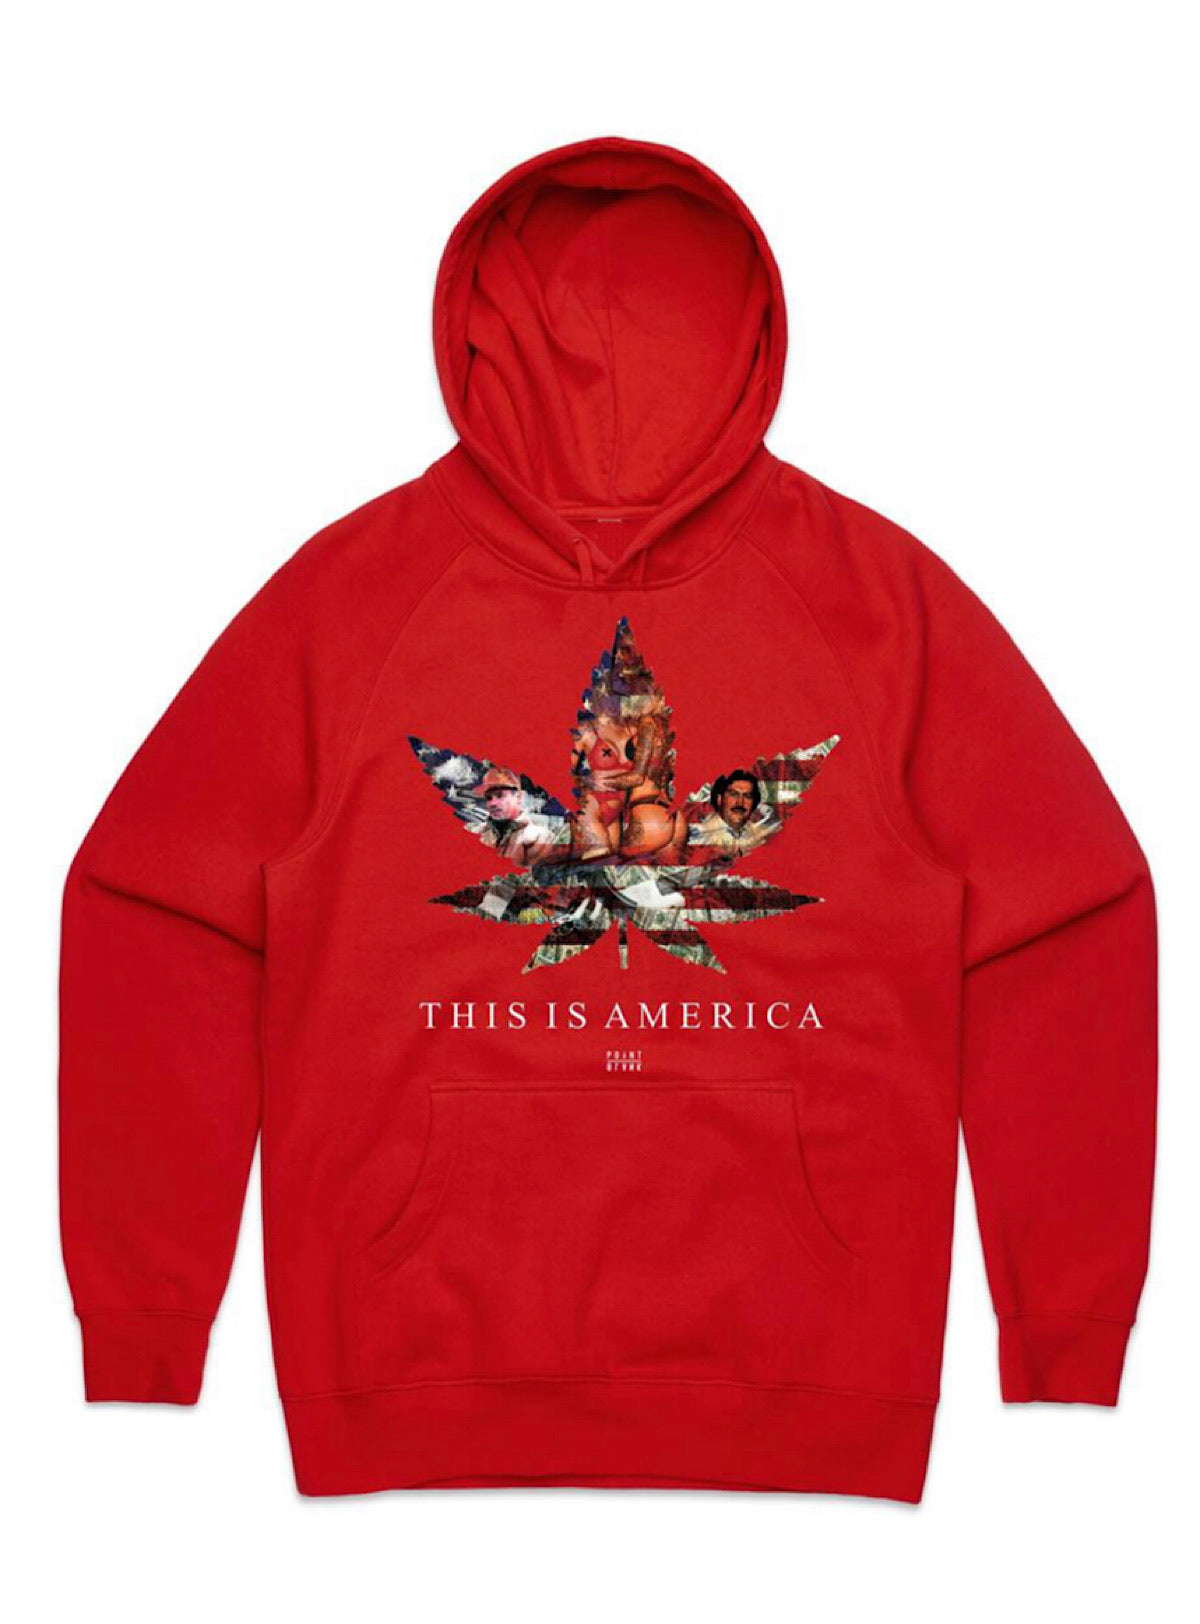 Point Blank Hoodie - This Is America - Red - 100987-1312